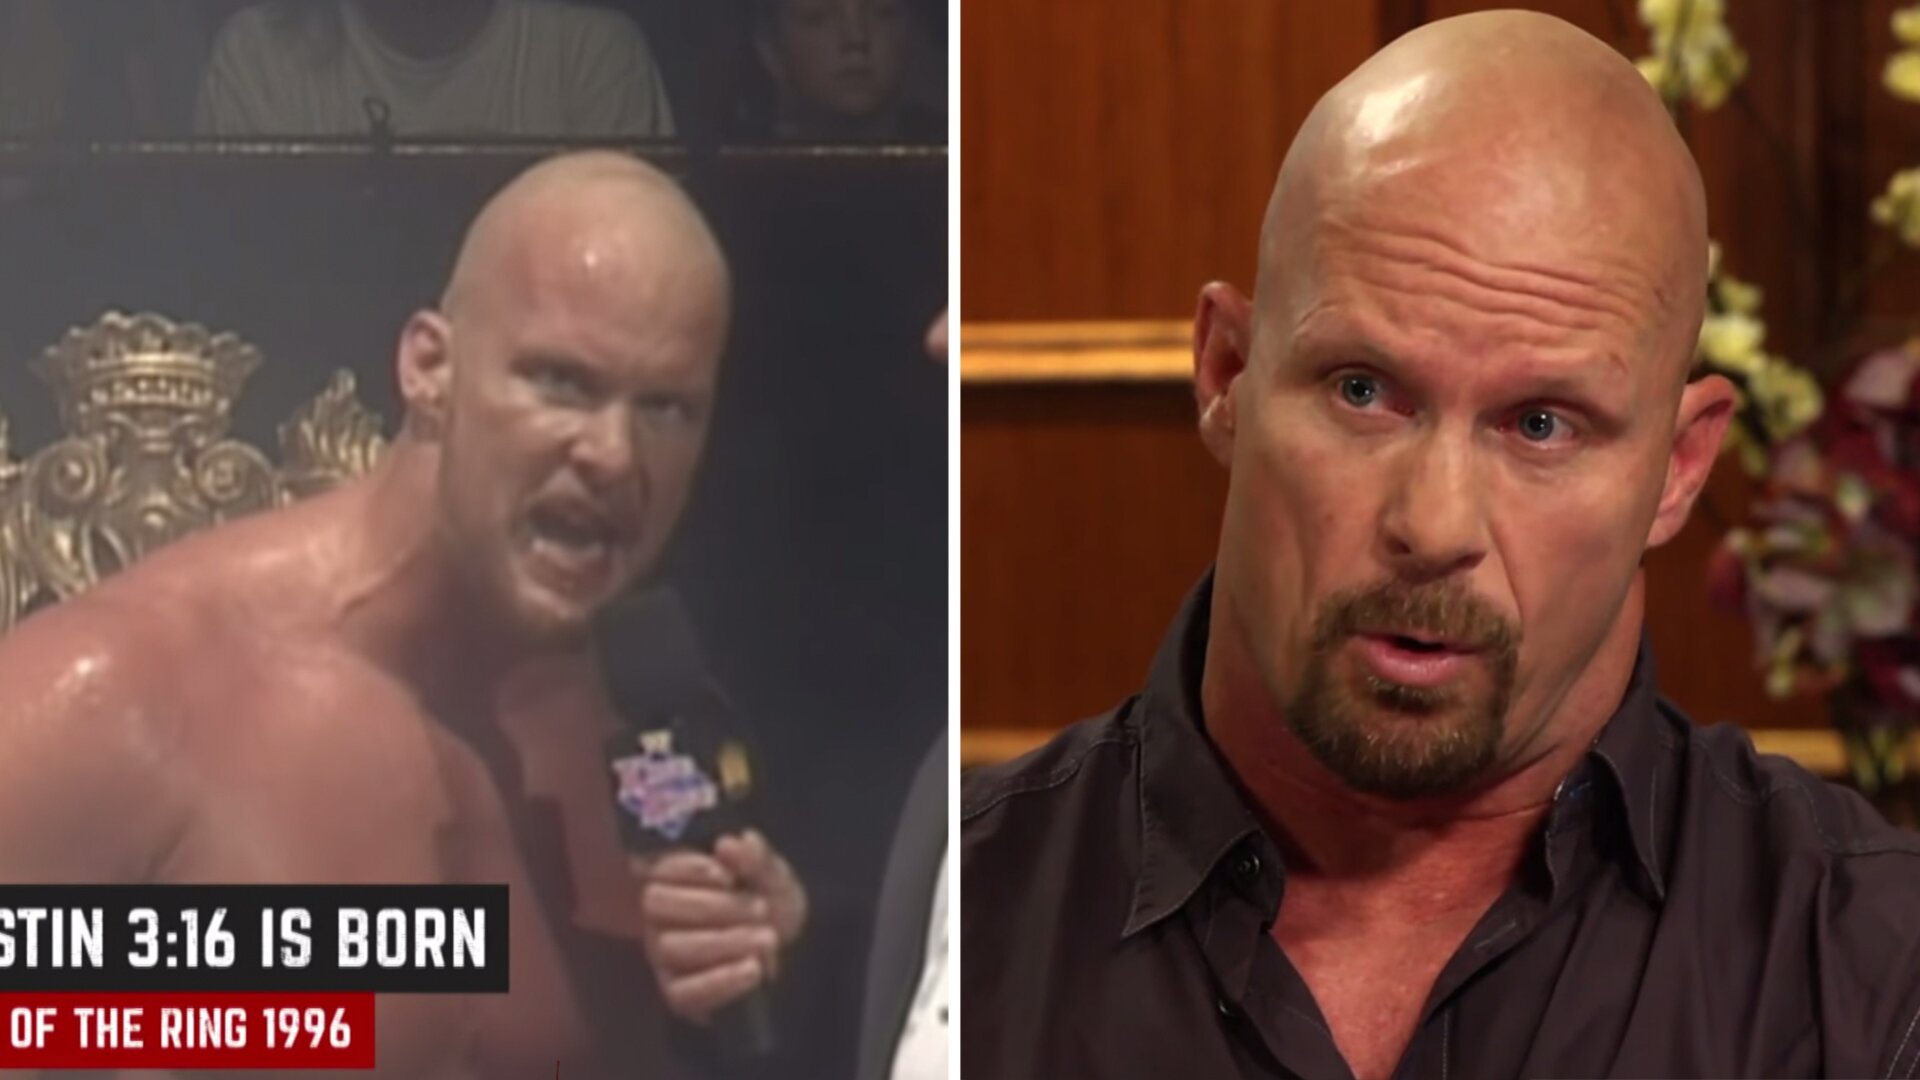 WWE Wrestling legend Steve Austin surprisingly weighs in on why rugby is not as popular as it could be in America